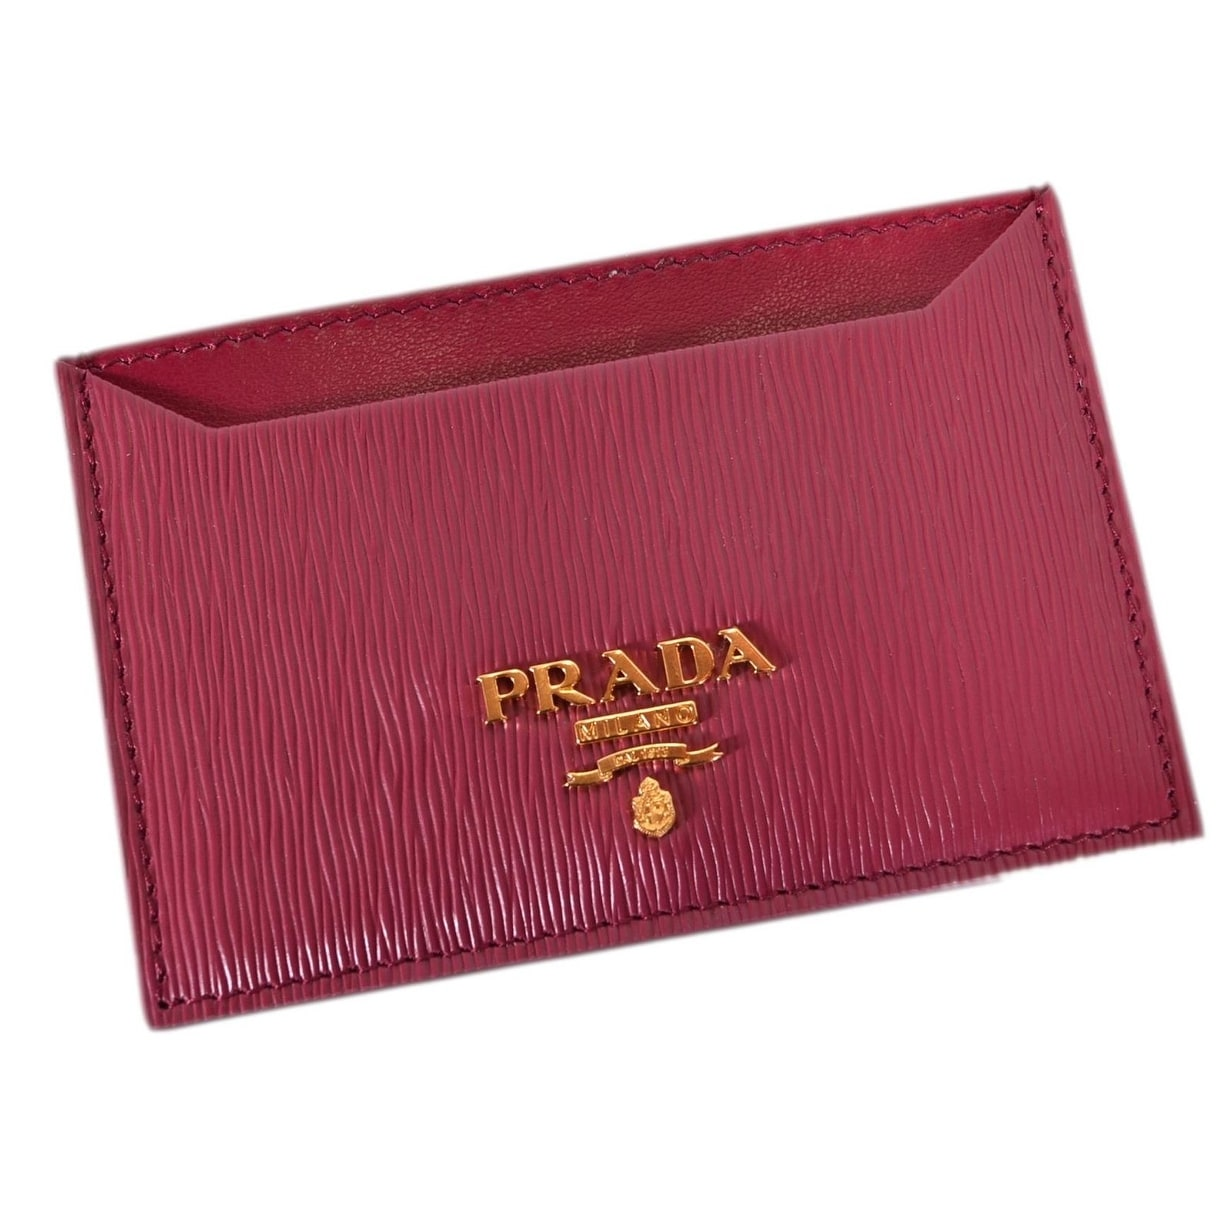 0053a3aa Prada Women's 1MC208 Ibisco Pink Saffiano Leather Metal Card Case ID Wallet  - 4